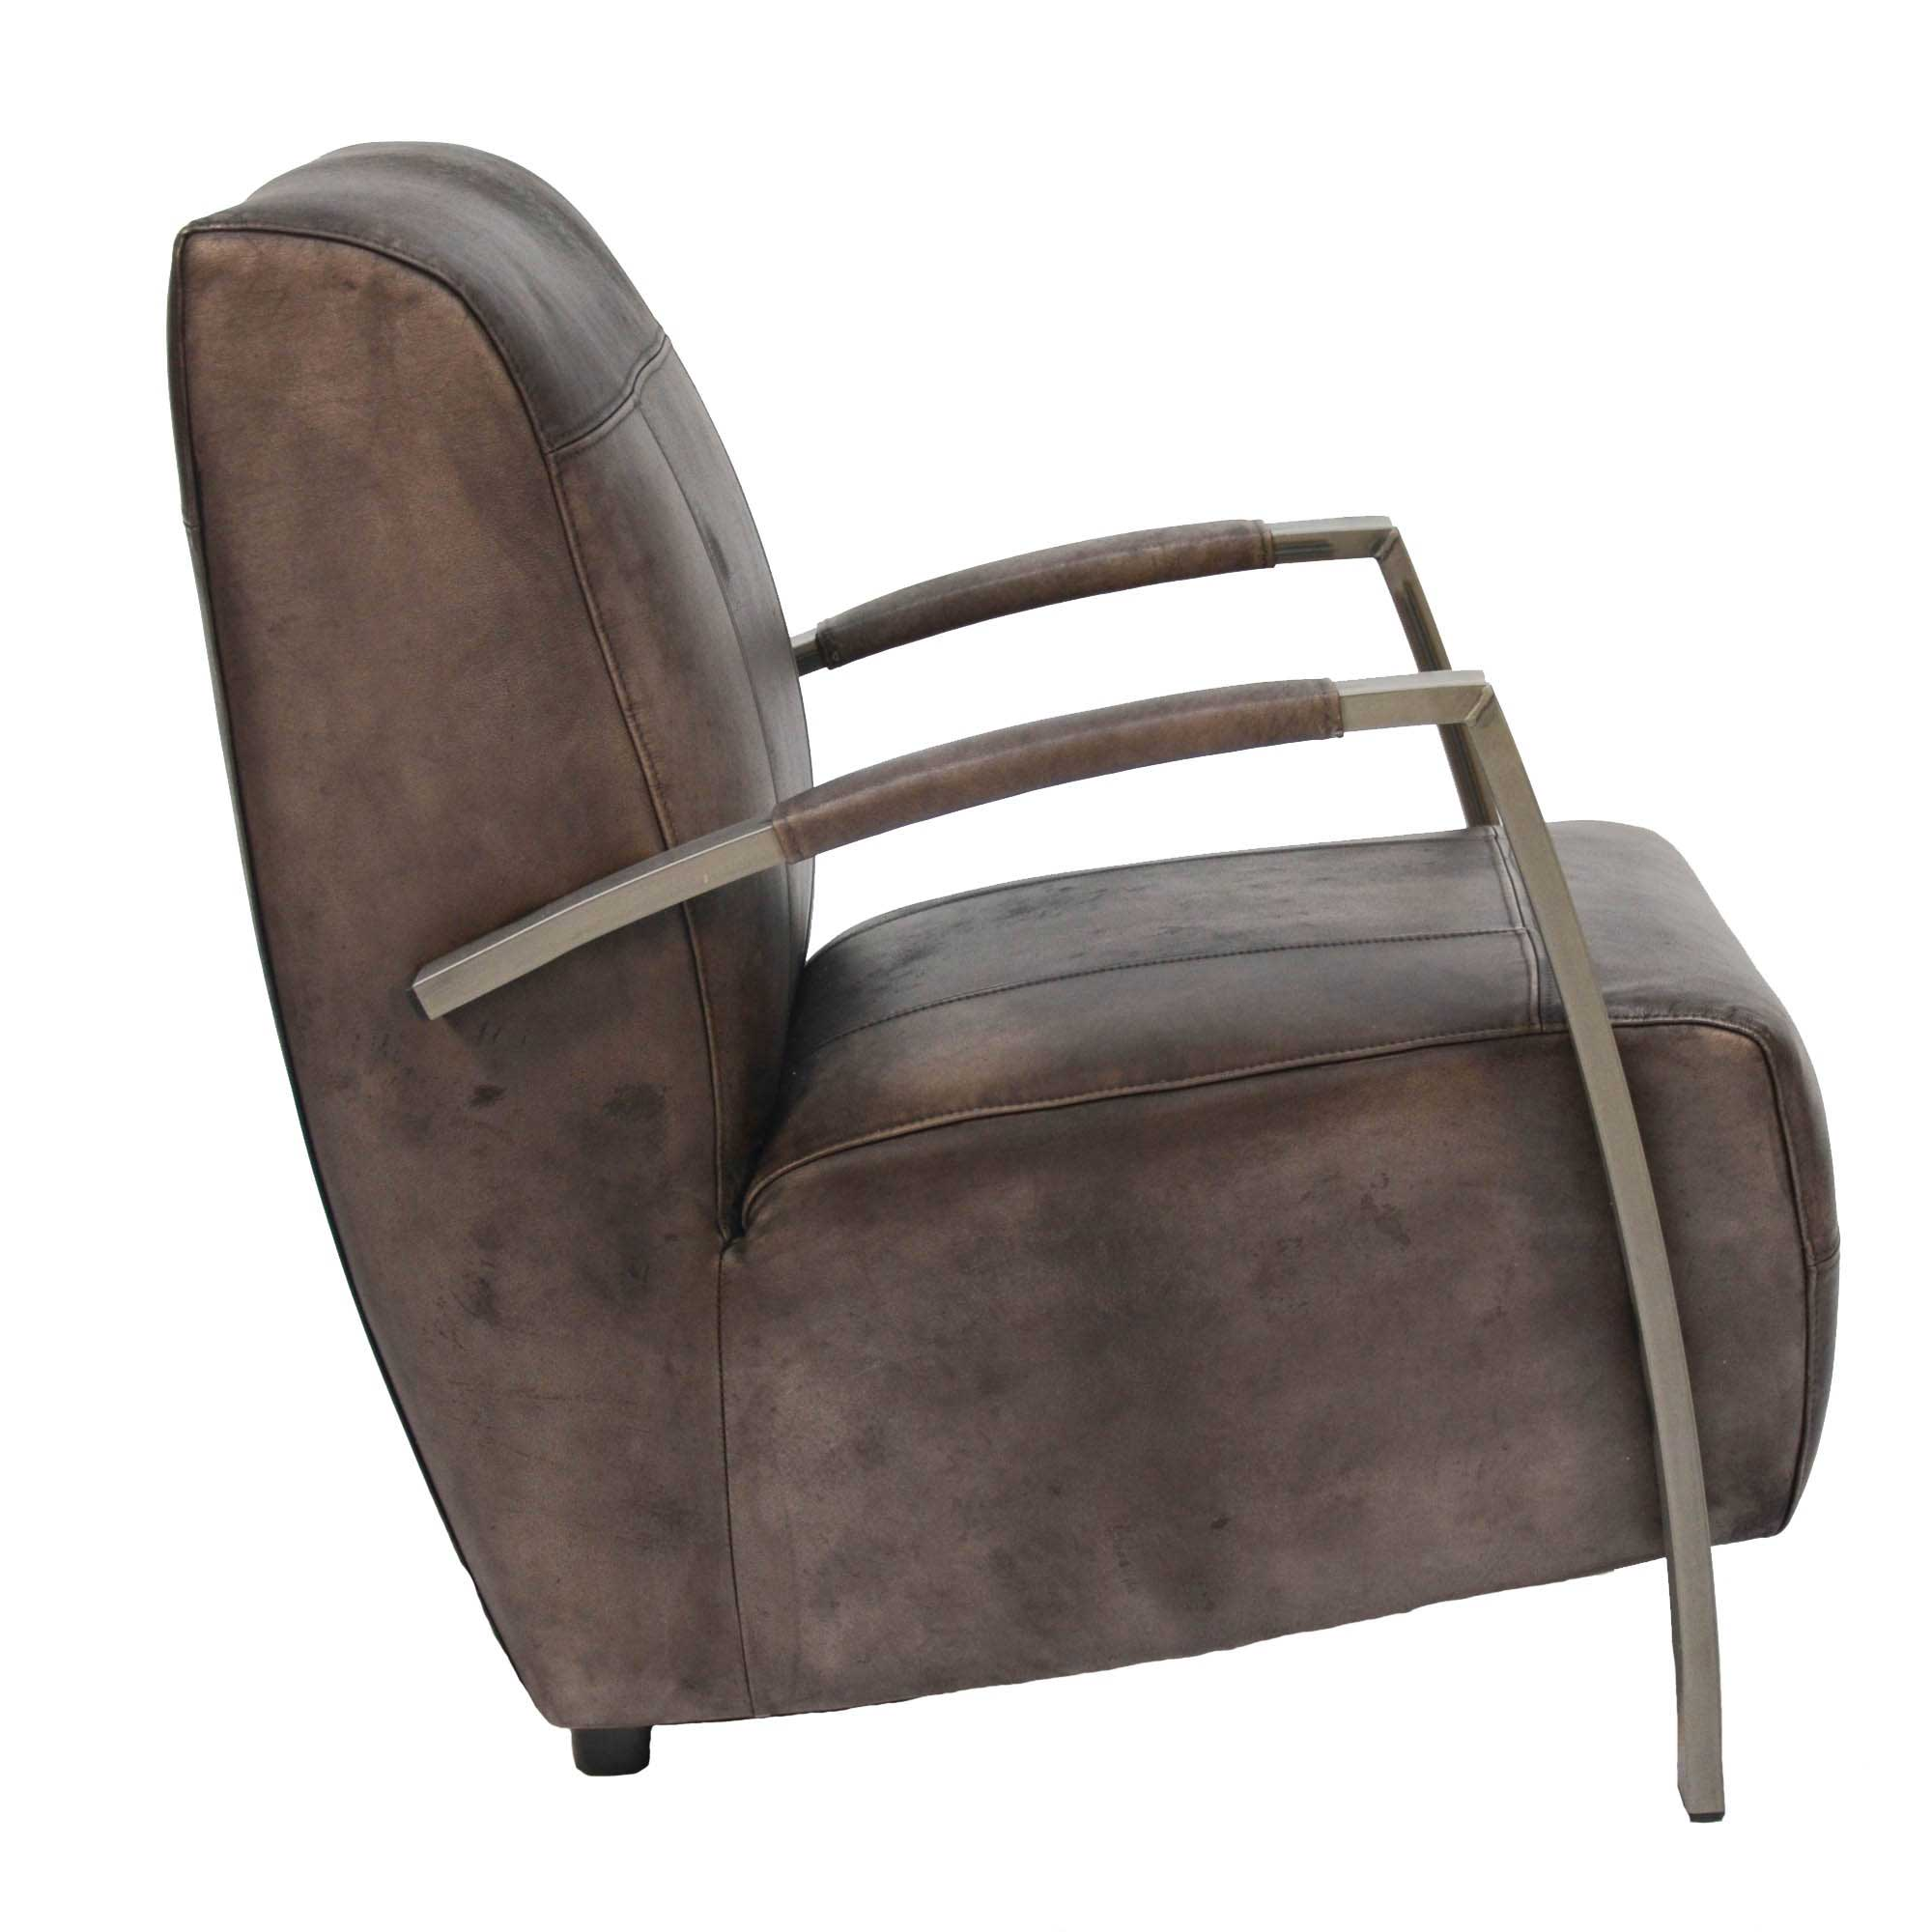 King Chair Sessel Sessel King